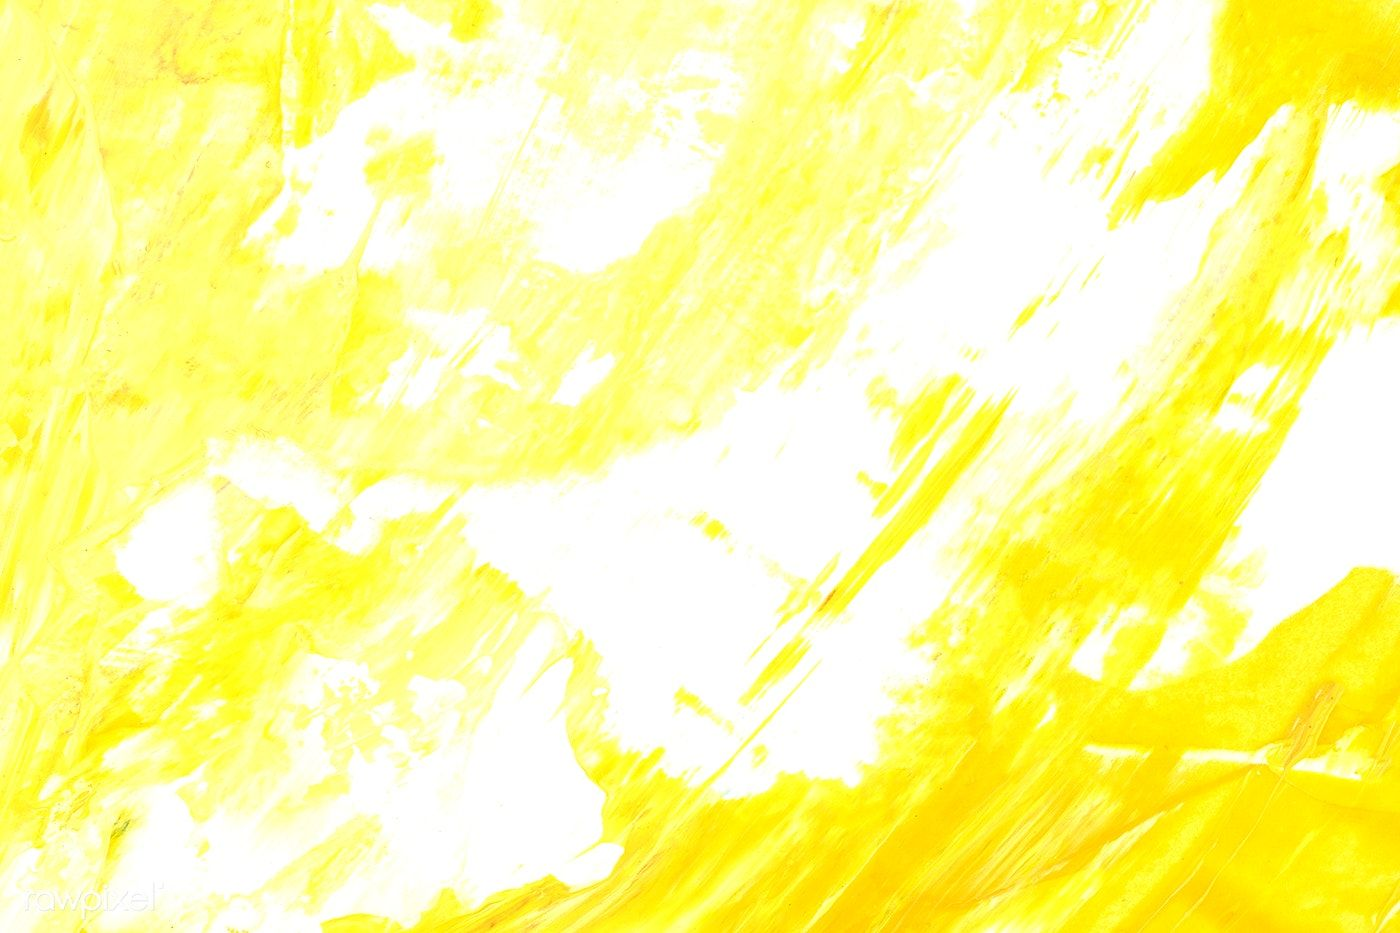 Yellow And White Brush Stroke Textured Background Free Image By Rawpixel Com Ake Brush Strokes Painting Brush Strokes Stock Images Free